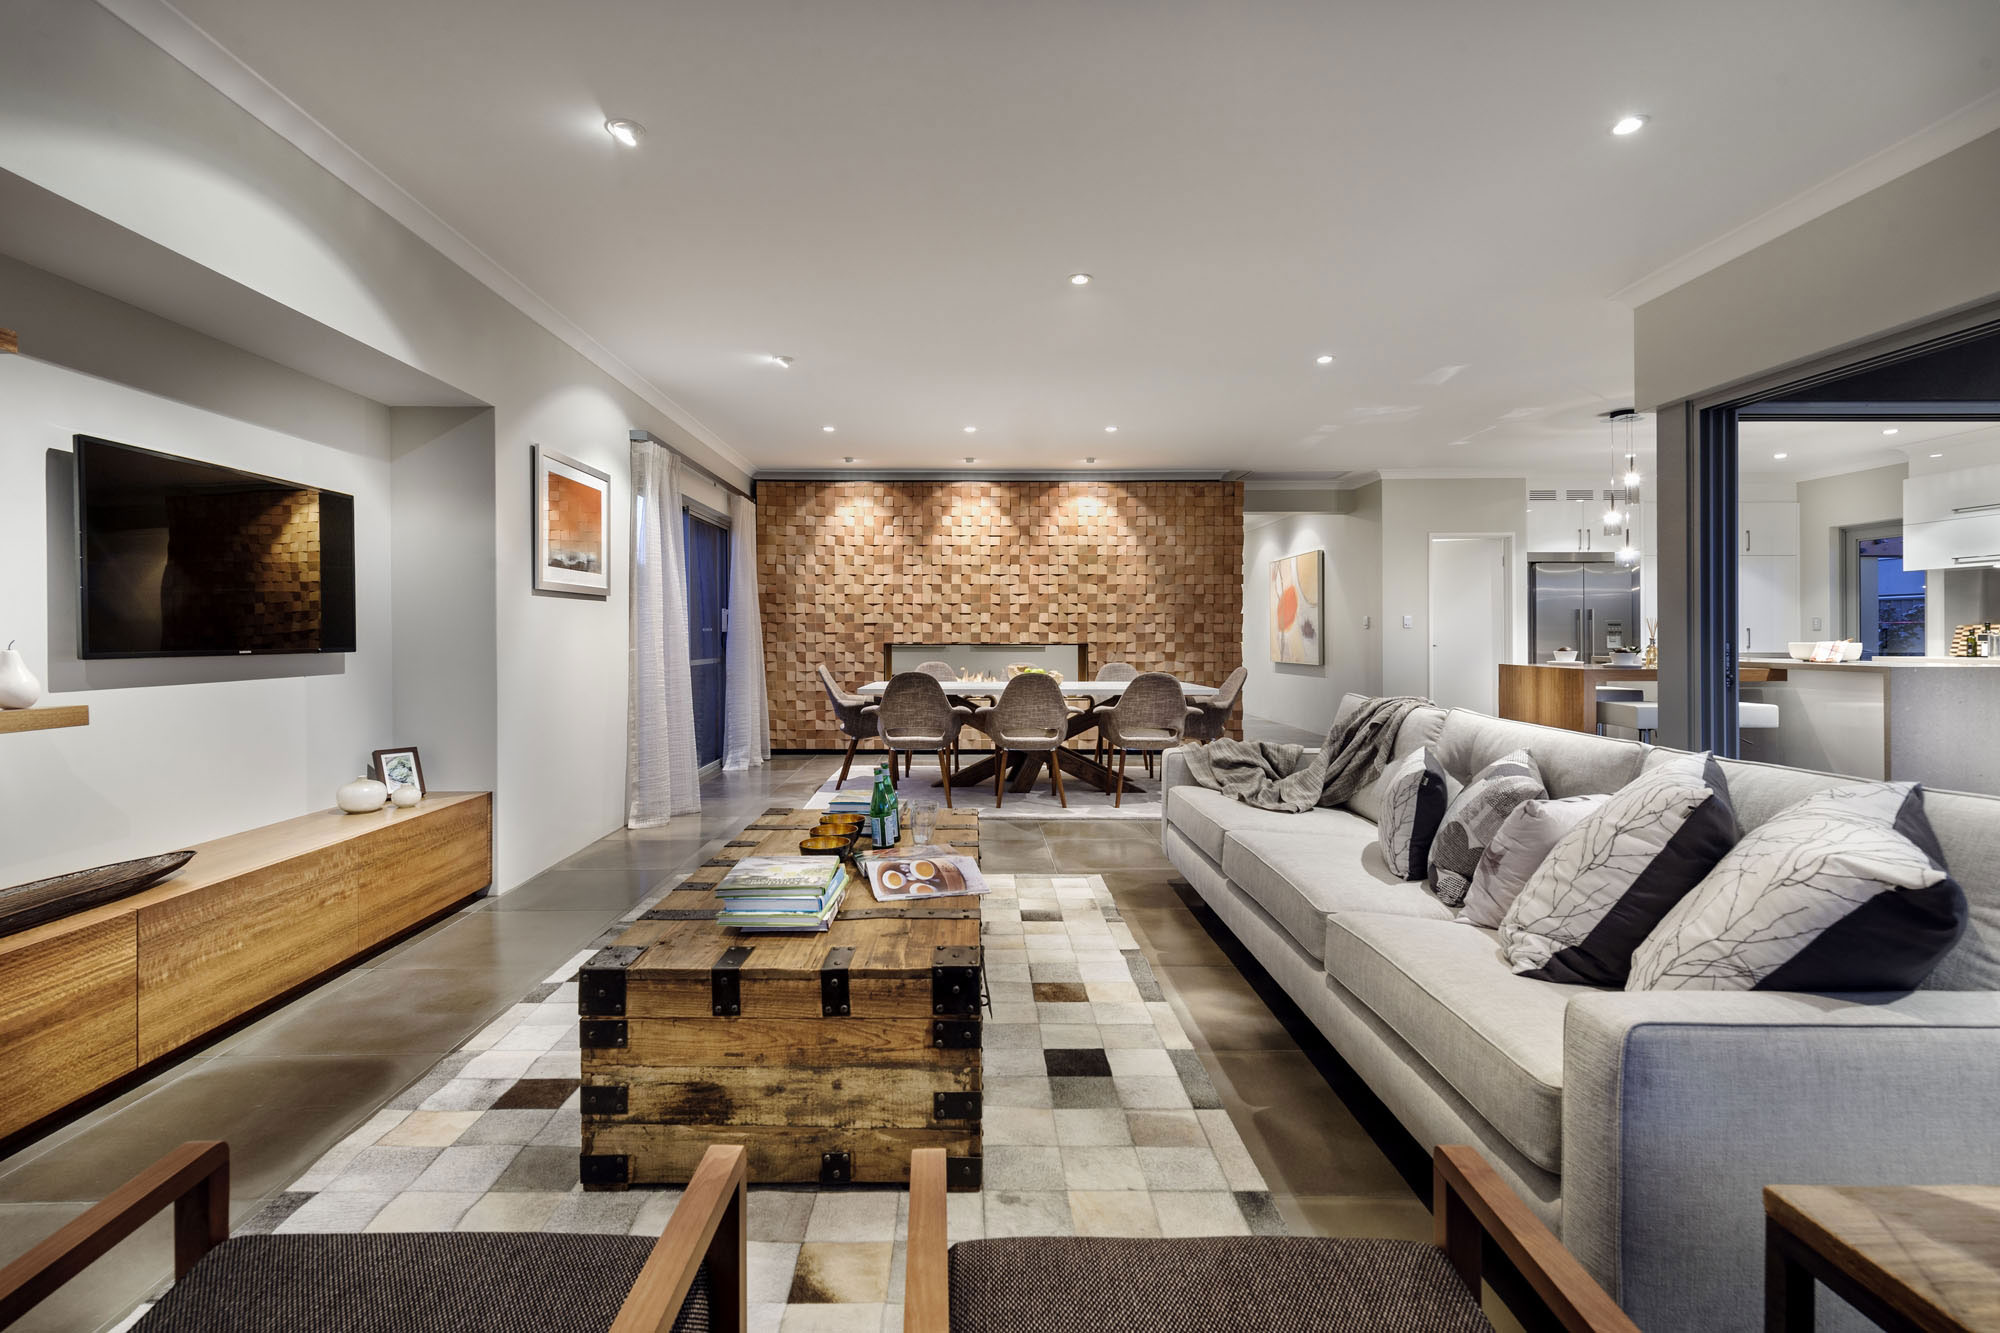 Rug, Rustic Coffee Table, Stylish Modern Home In Wandi, Perth